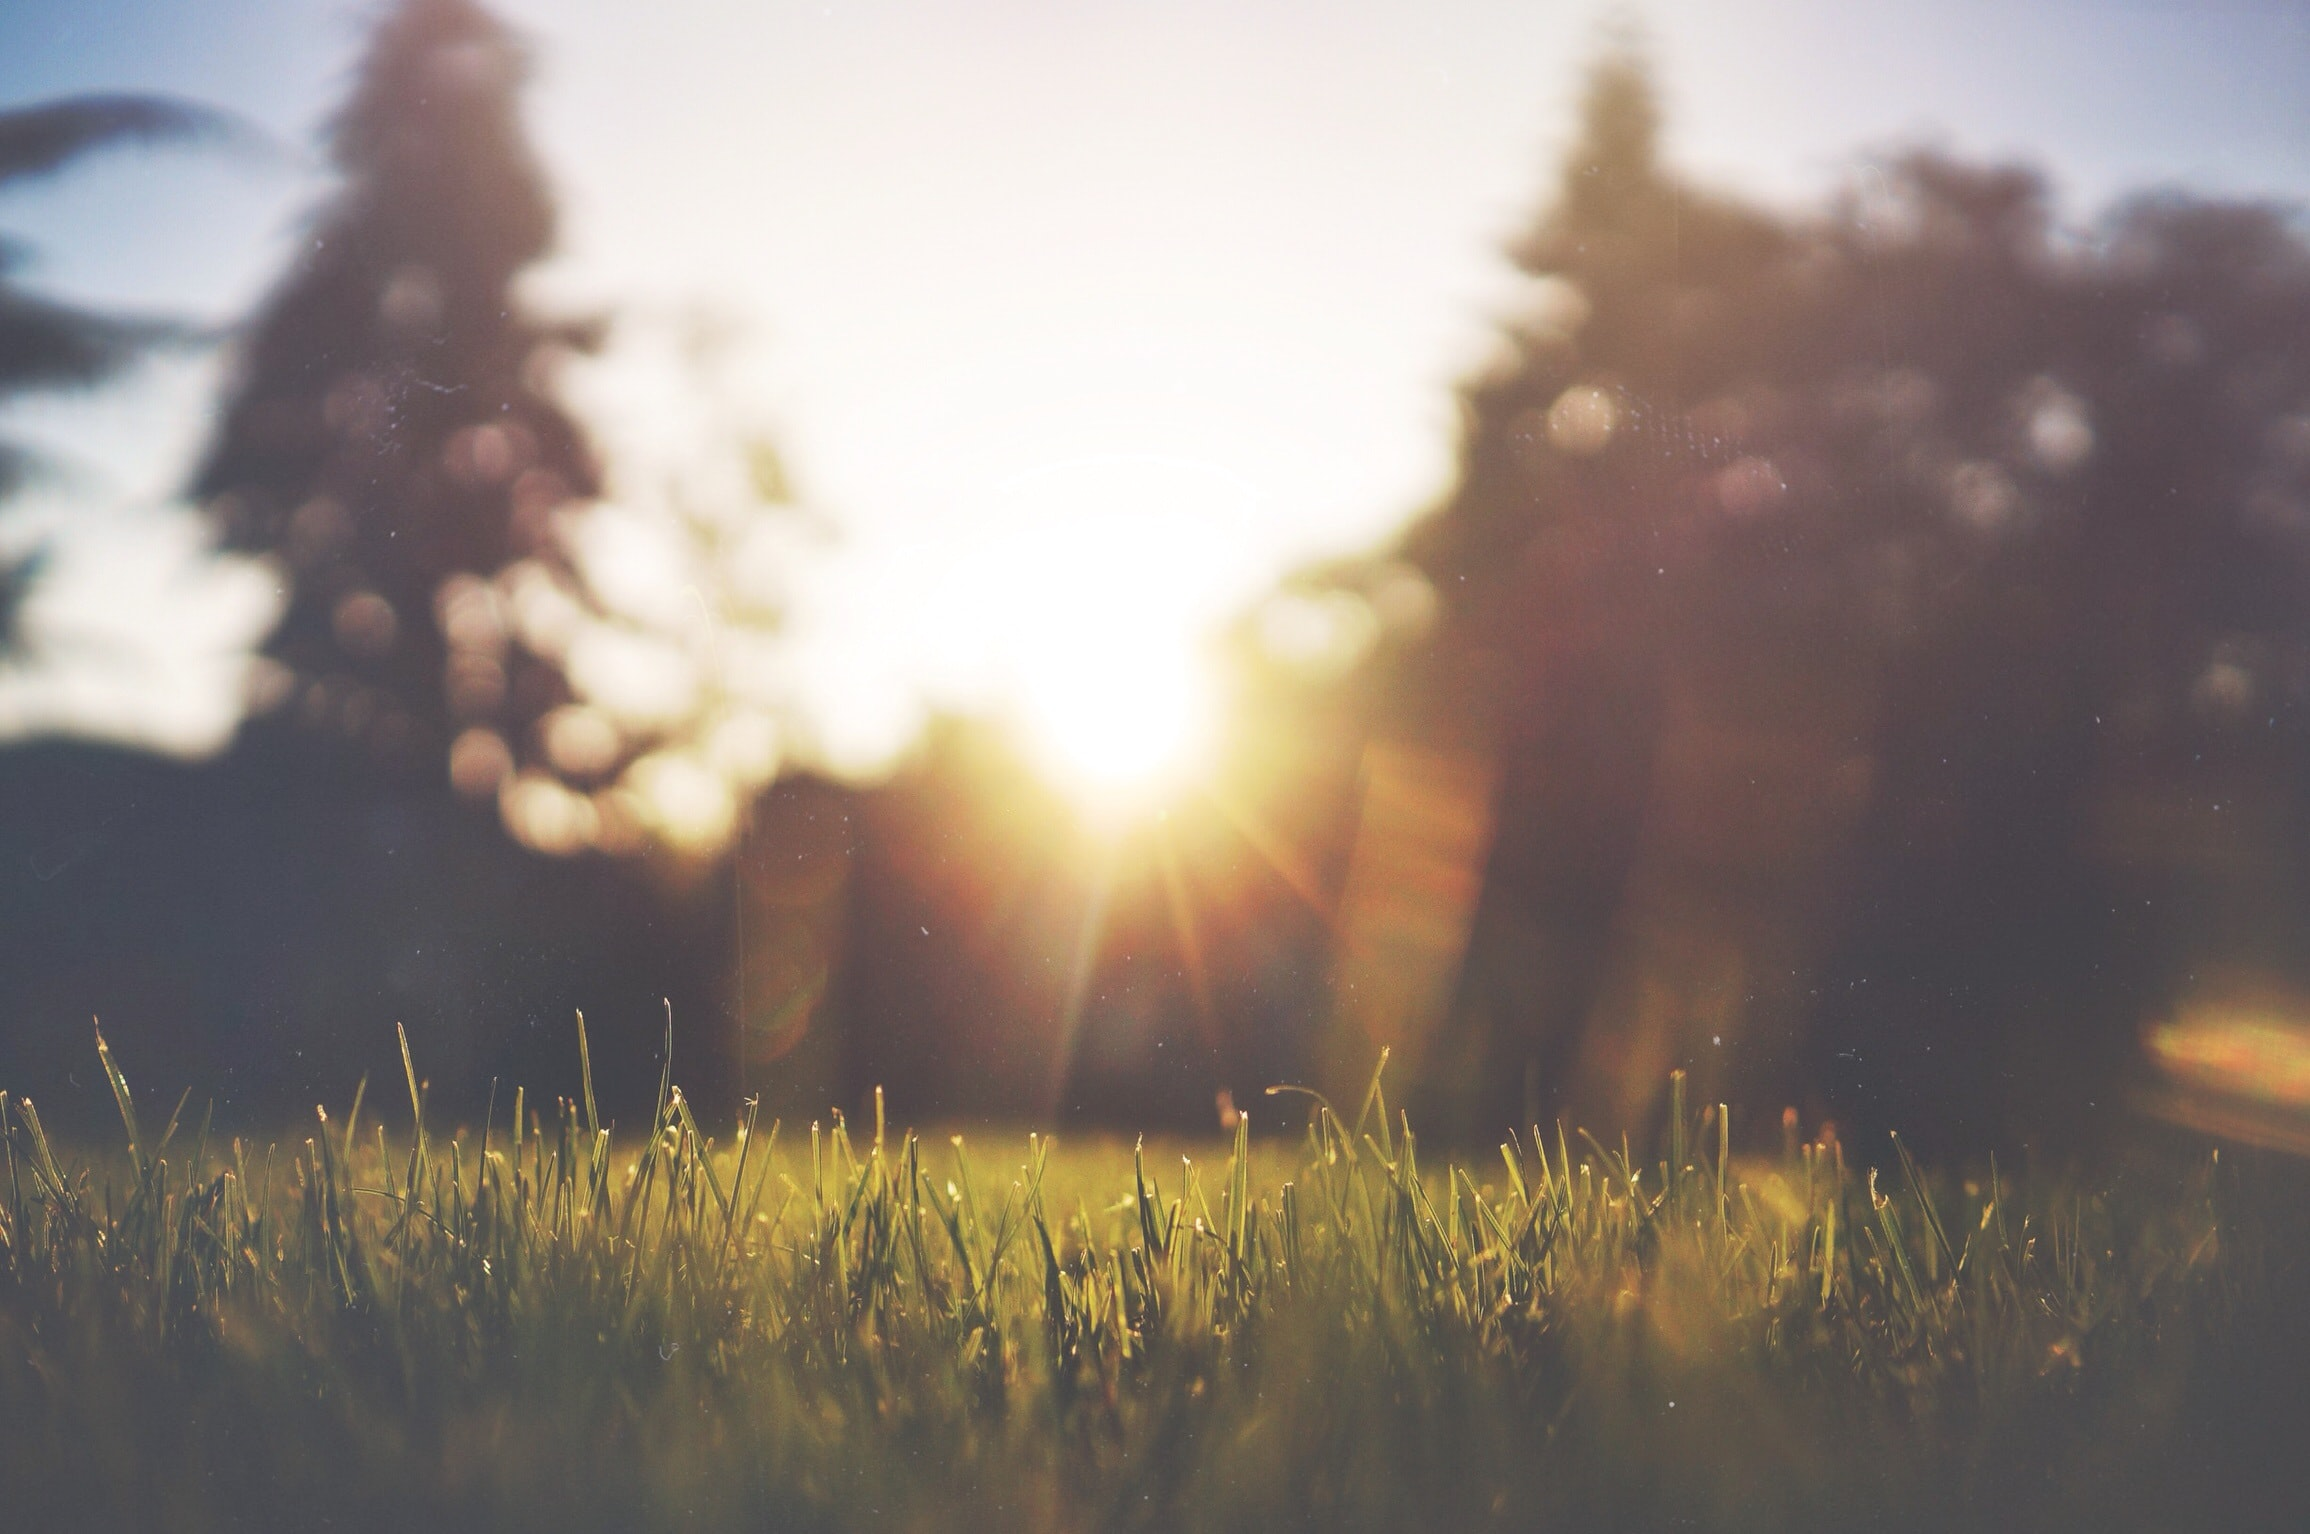 The grass and sun feature in perfect morning picture. Nature can't be more beautiful